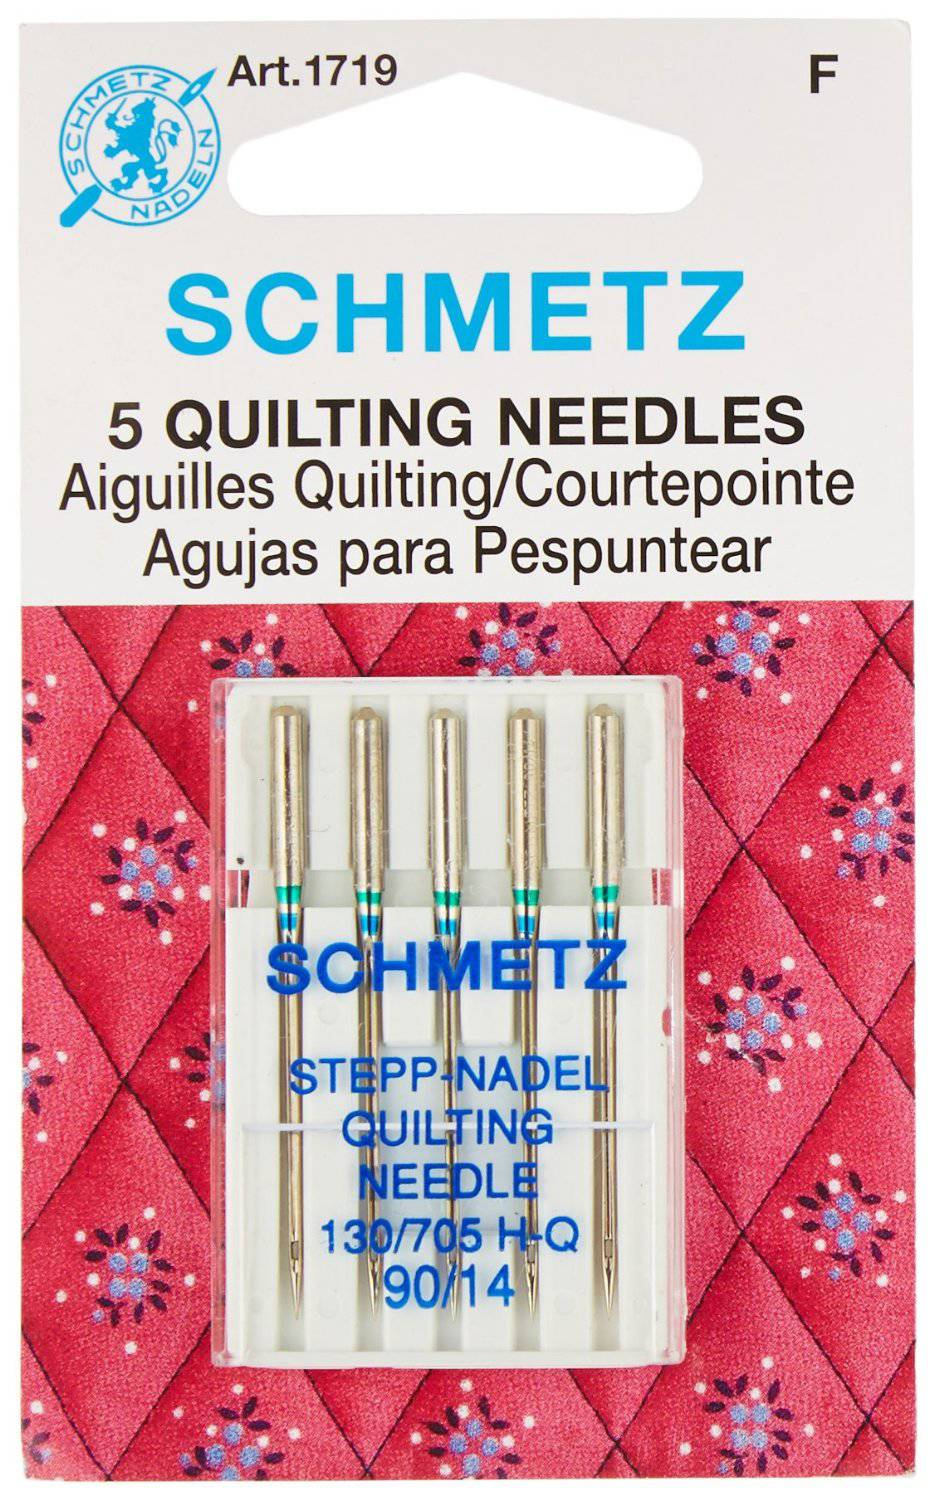 make sure you have the right needle for your quilting project!